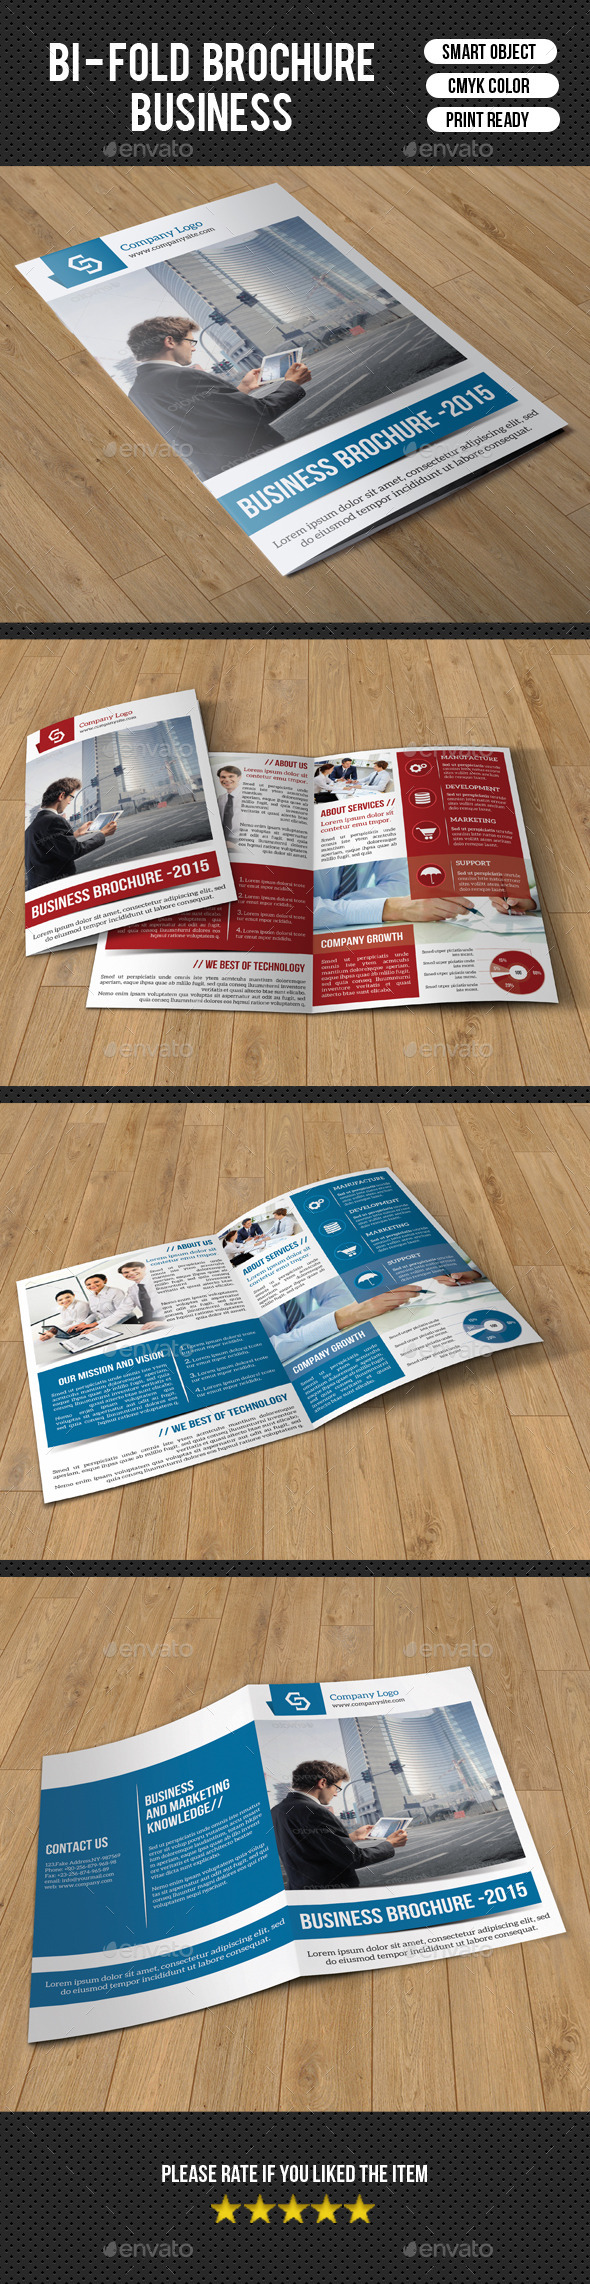 GraphicRiver Trifold Business Brochure-V213 9997251